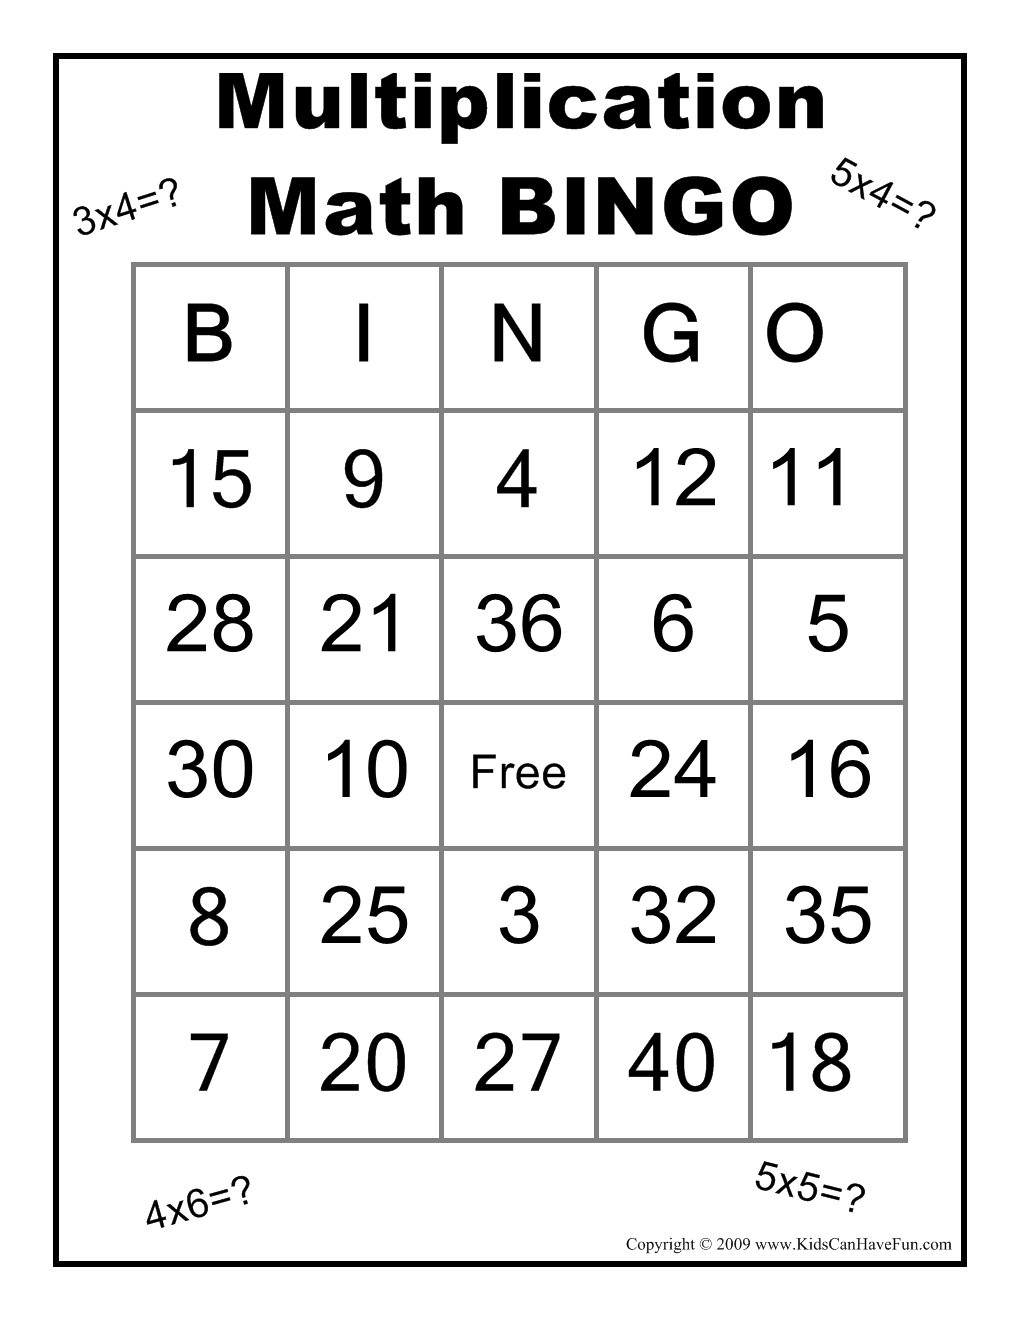 Worksheets Multiplication Games Worksheets multiplication math bingo game httpwww kidscanhavefun com comschool